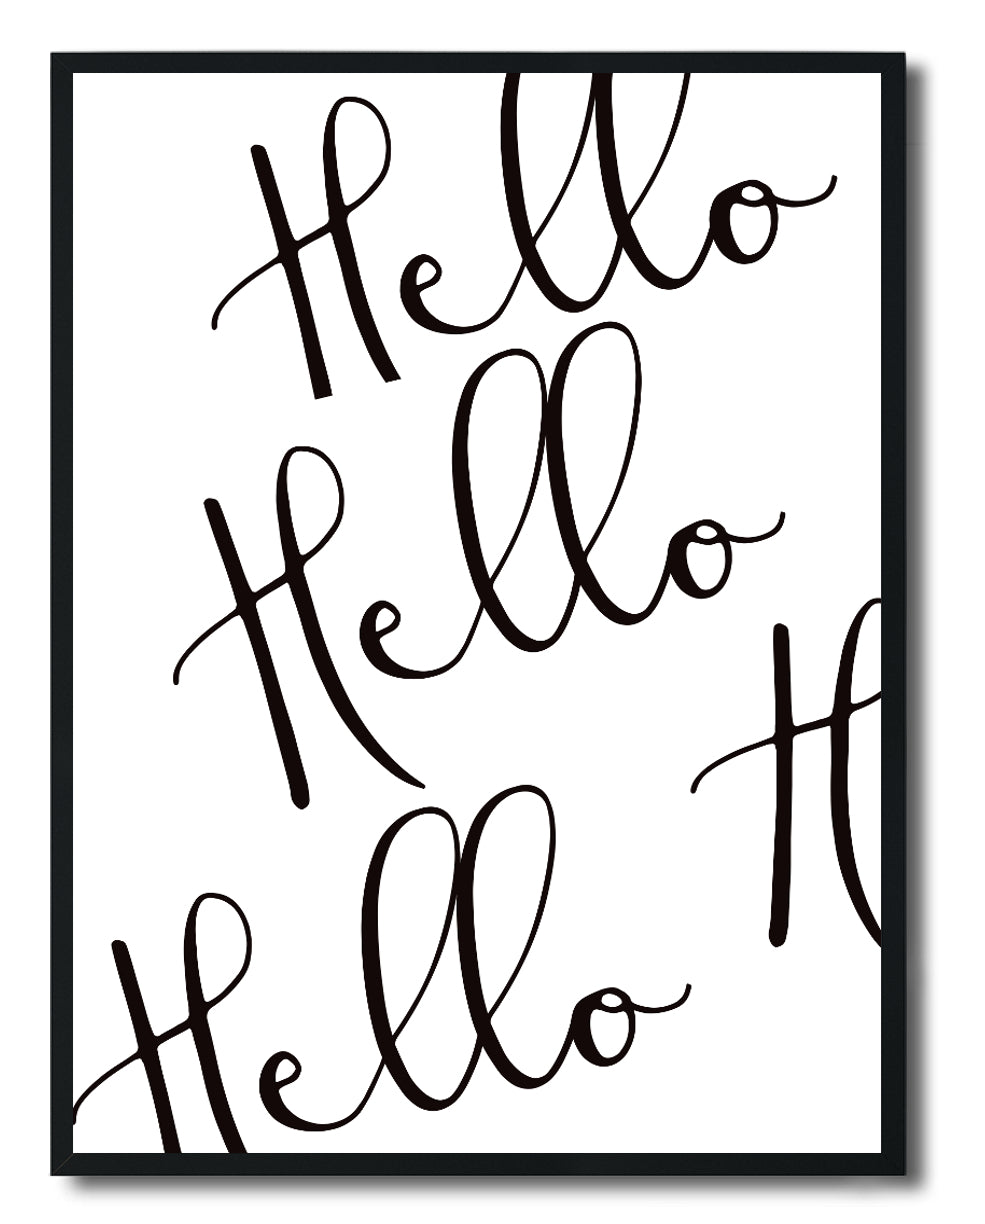 Wall Art - Hellos Black on White Typography Print - Framed / unframed art print (A-779)